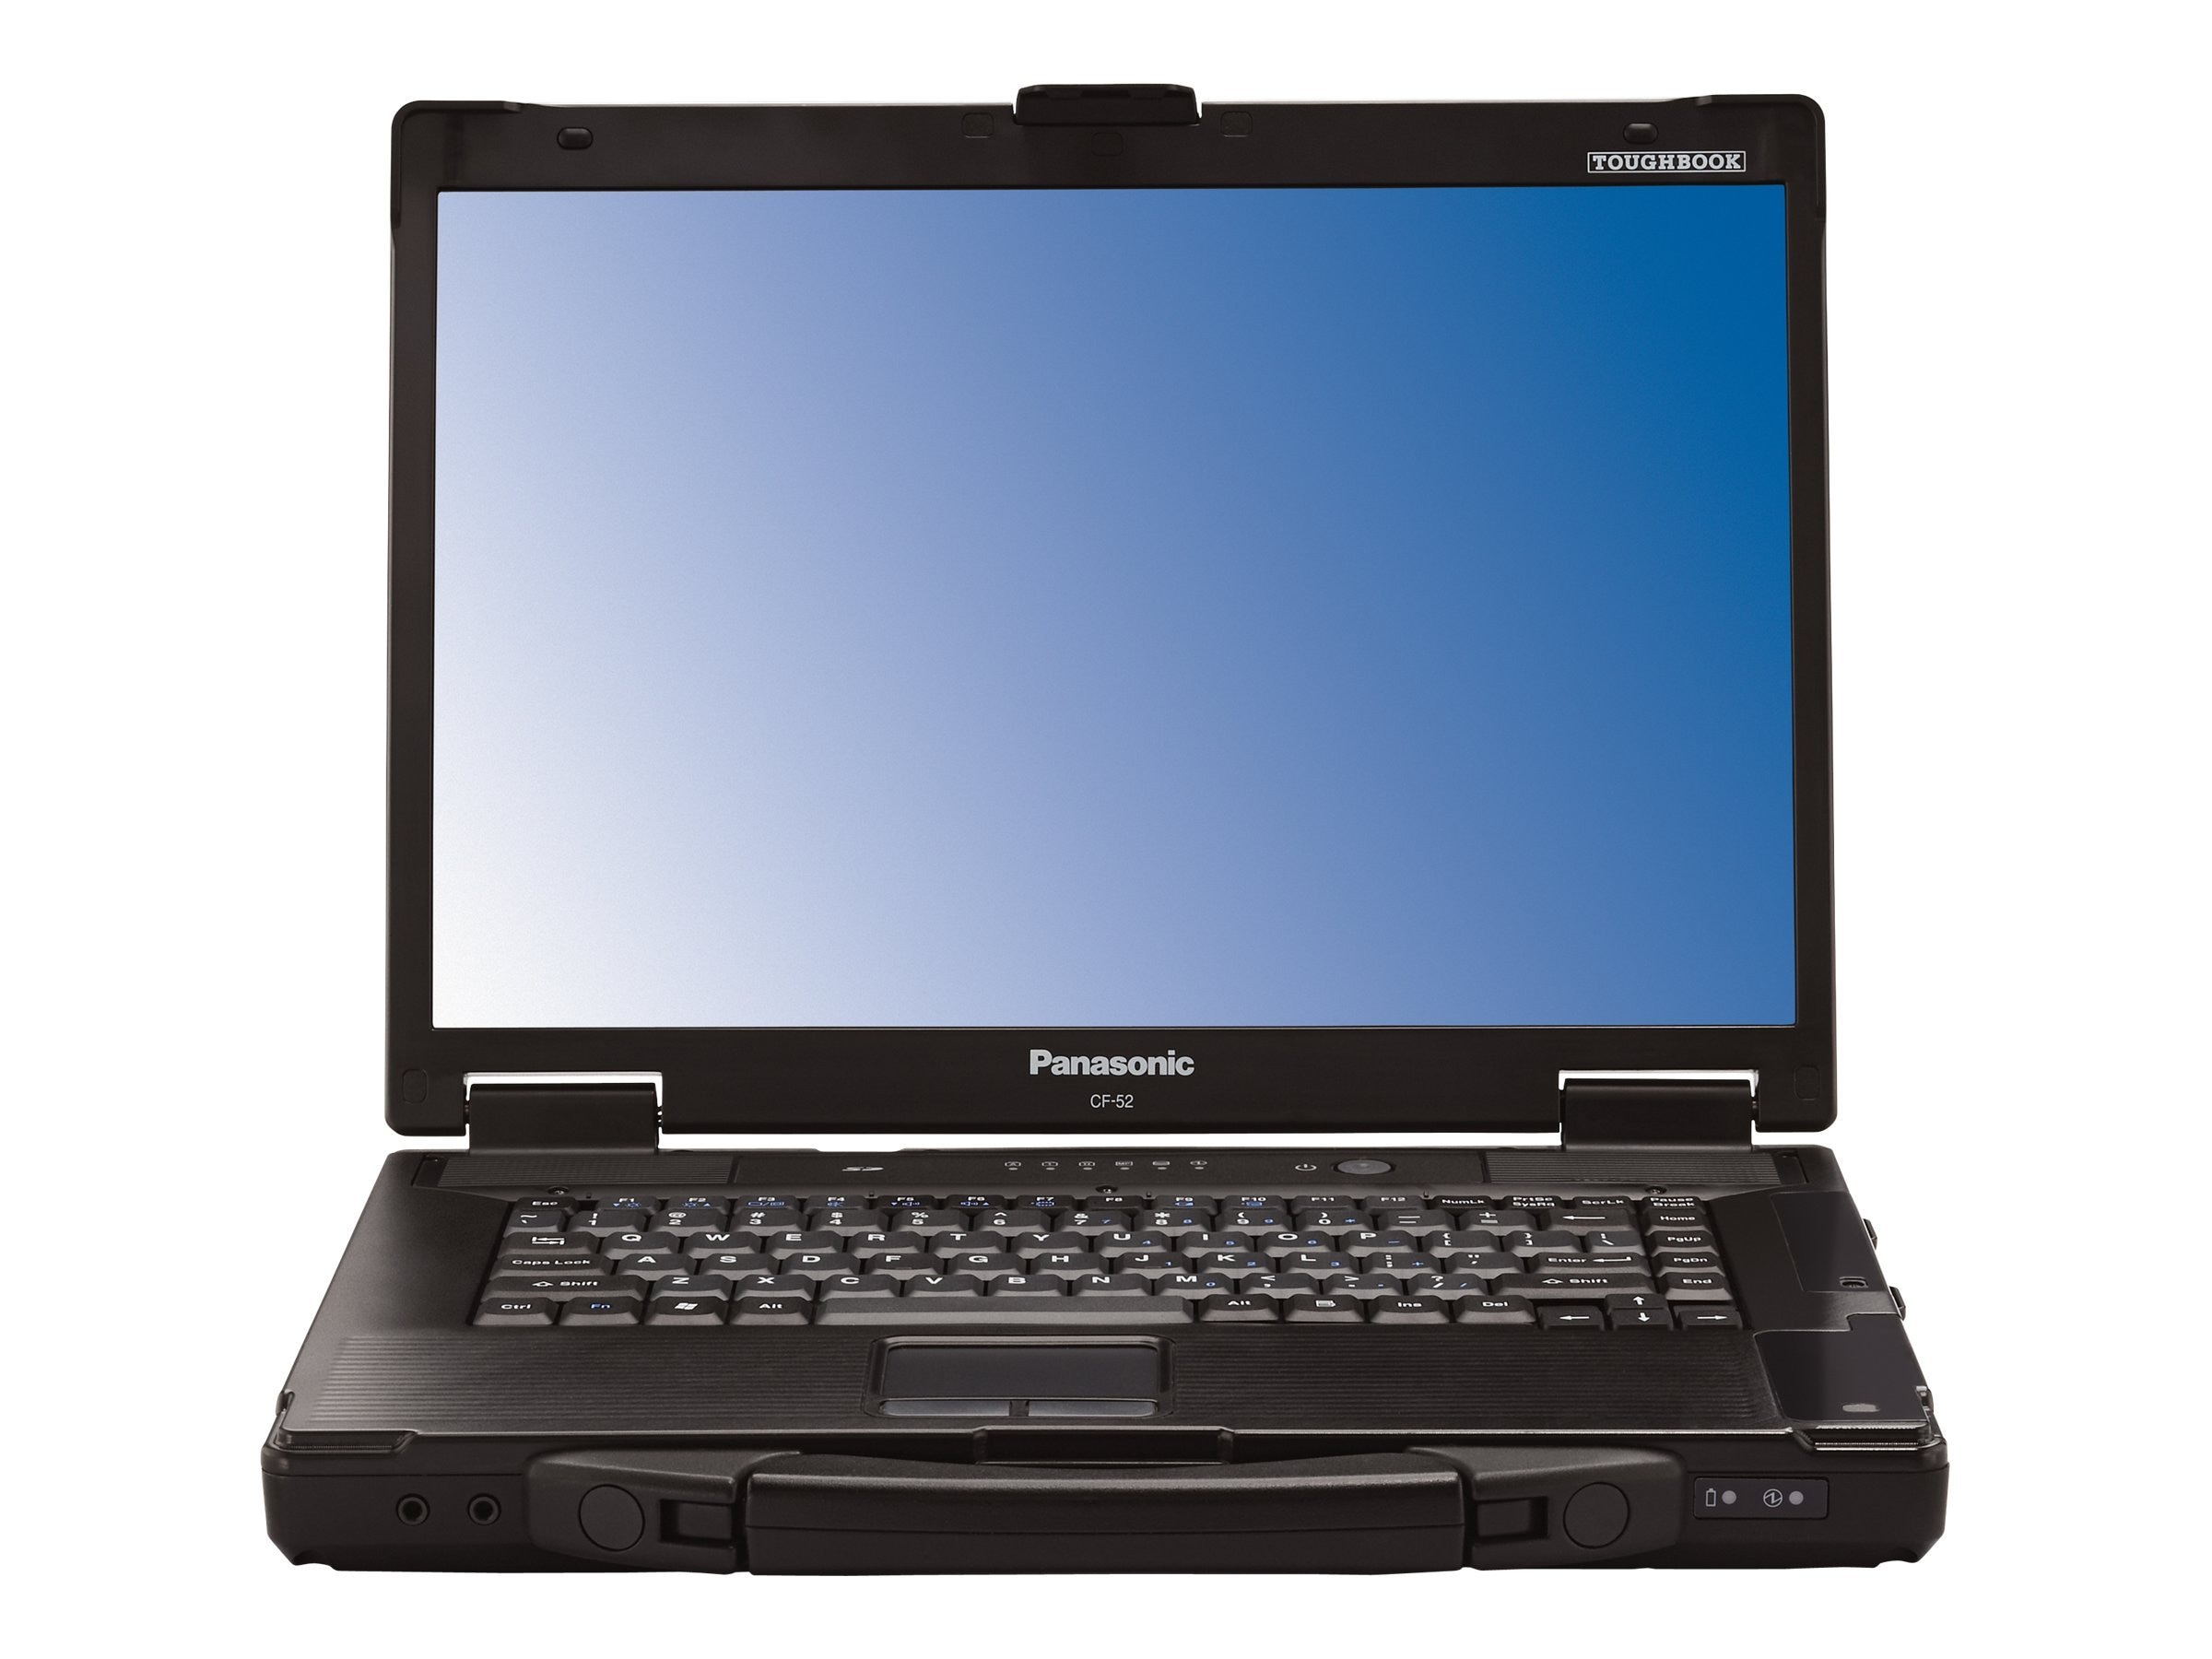 Panasonic Toughbook 31 vPro Core i7-5600U 2.6GHz 8GB 256GB 13.1 XGA MT W10P